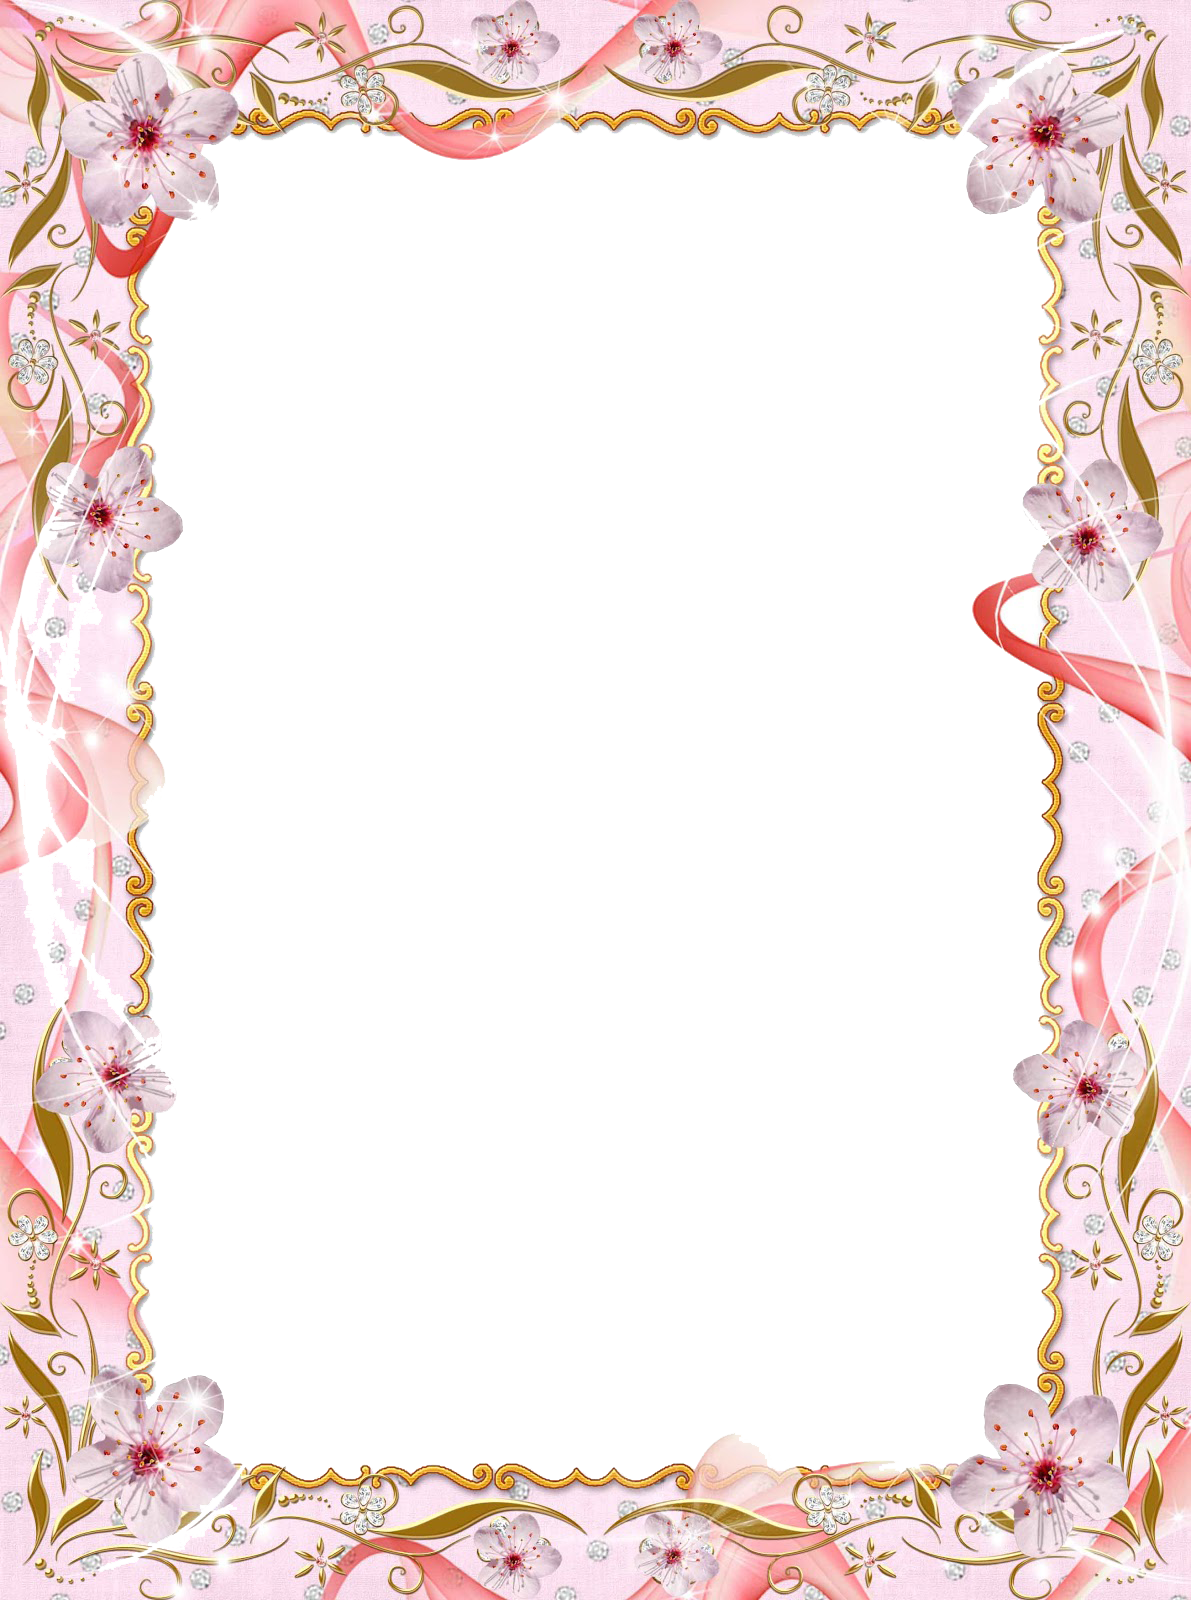 Wedding Frame PNG HD - Wedding HD PNG